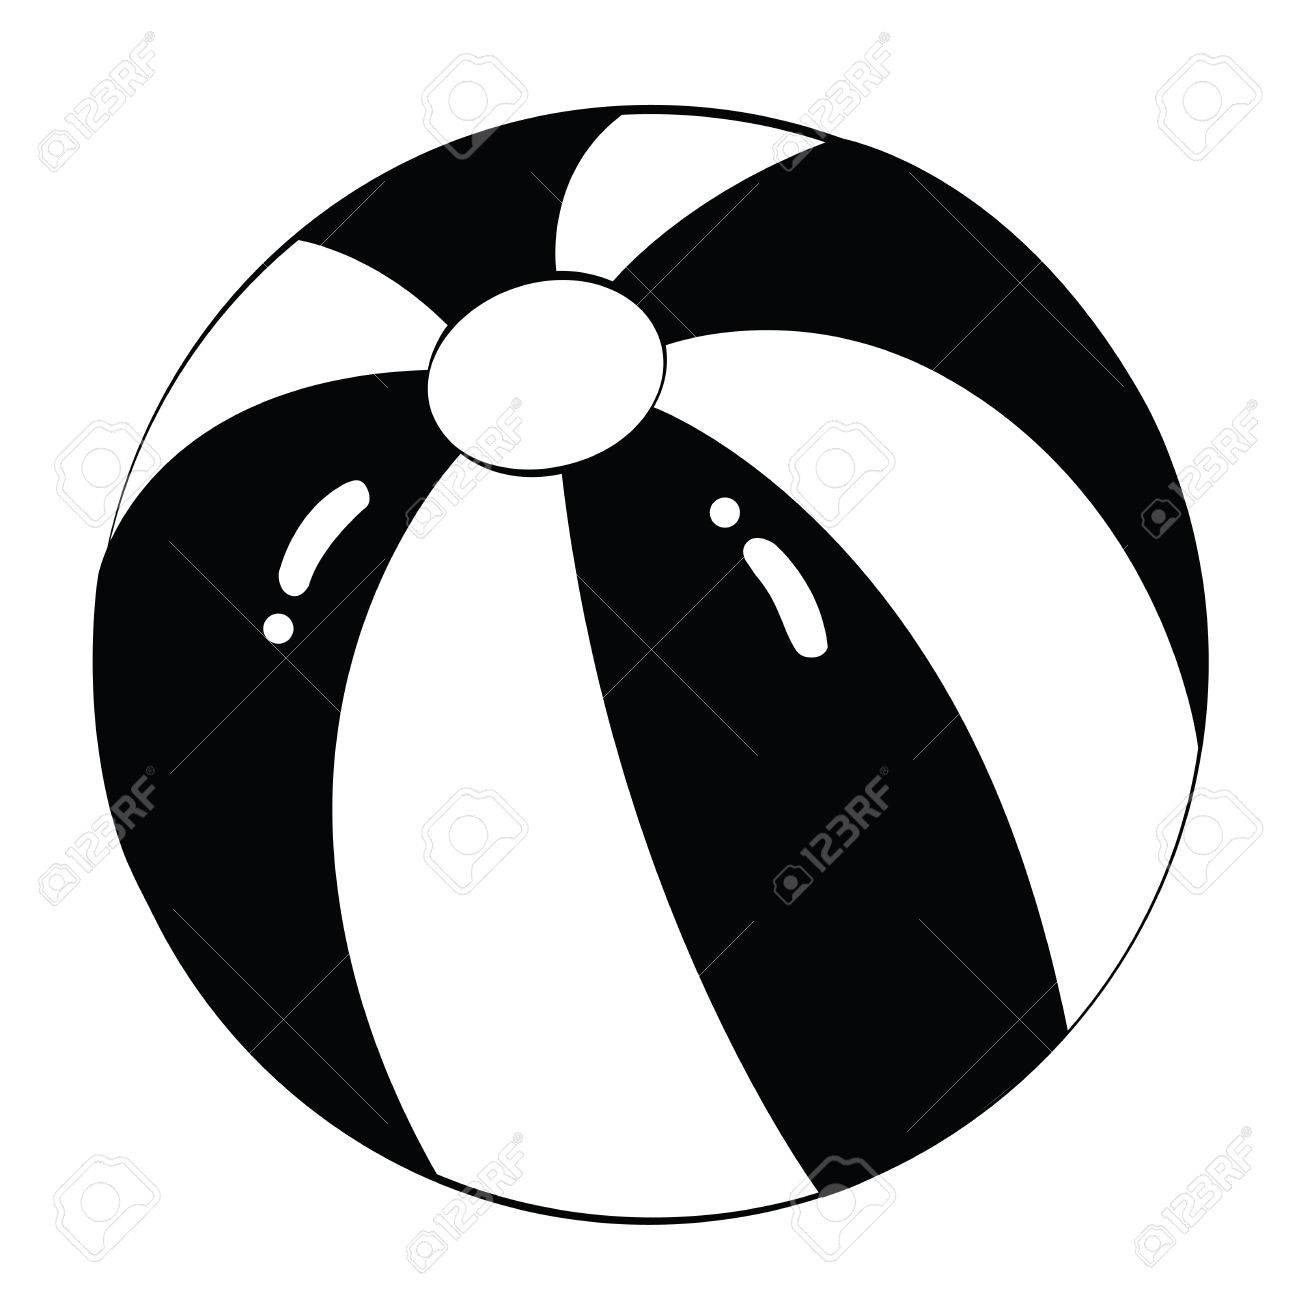 Black Outline Vector Beach Ball On White Background. Stock Vector   25307177